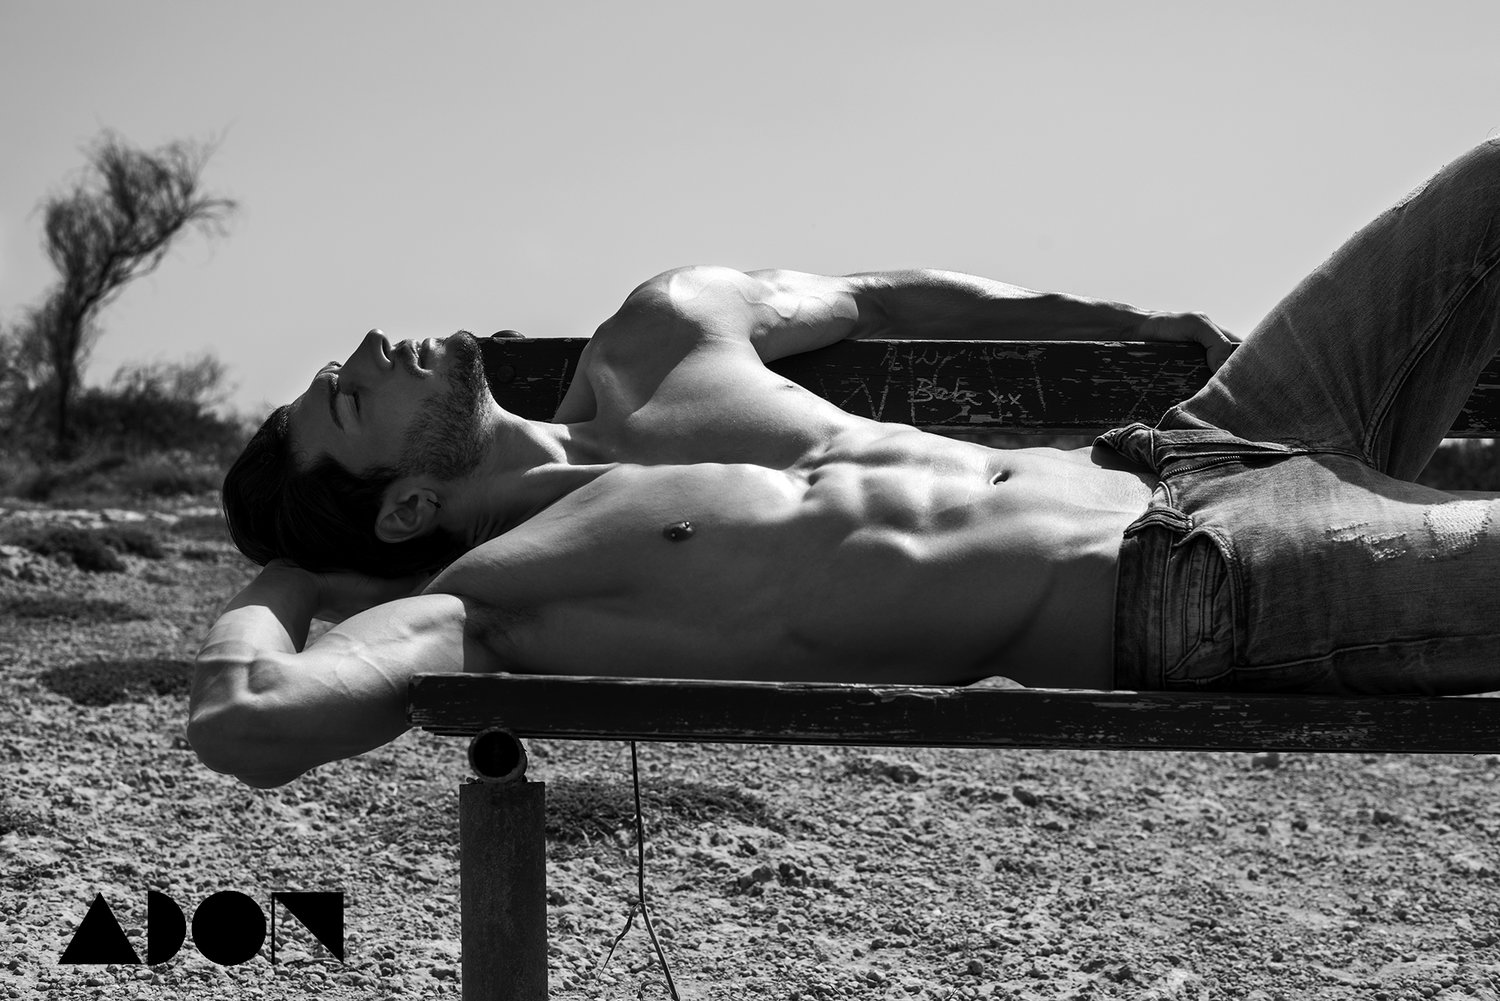 Adon Exclusive: Model Giuseppe Commisso By Stavros Christodoulou